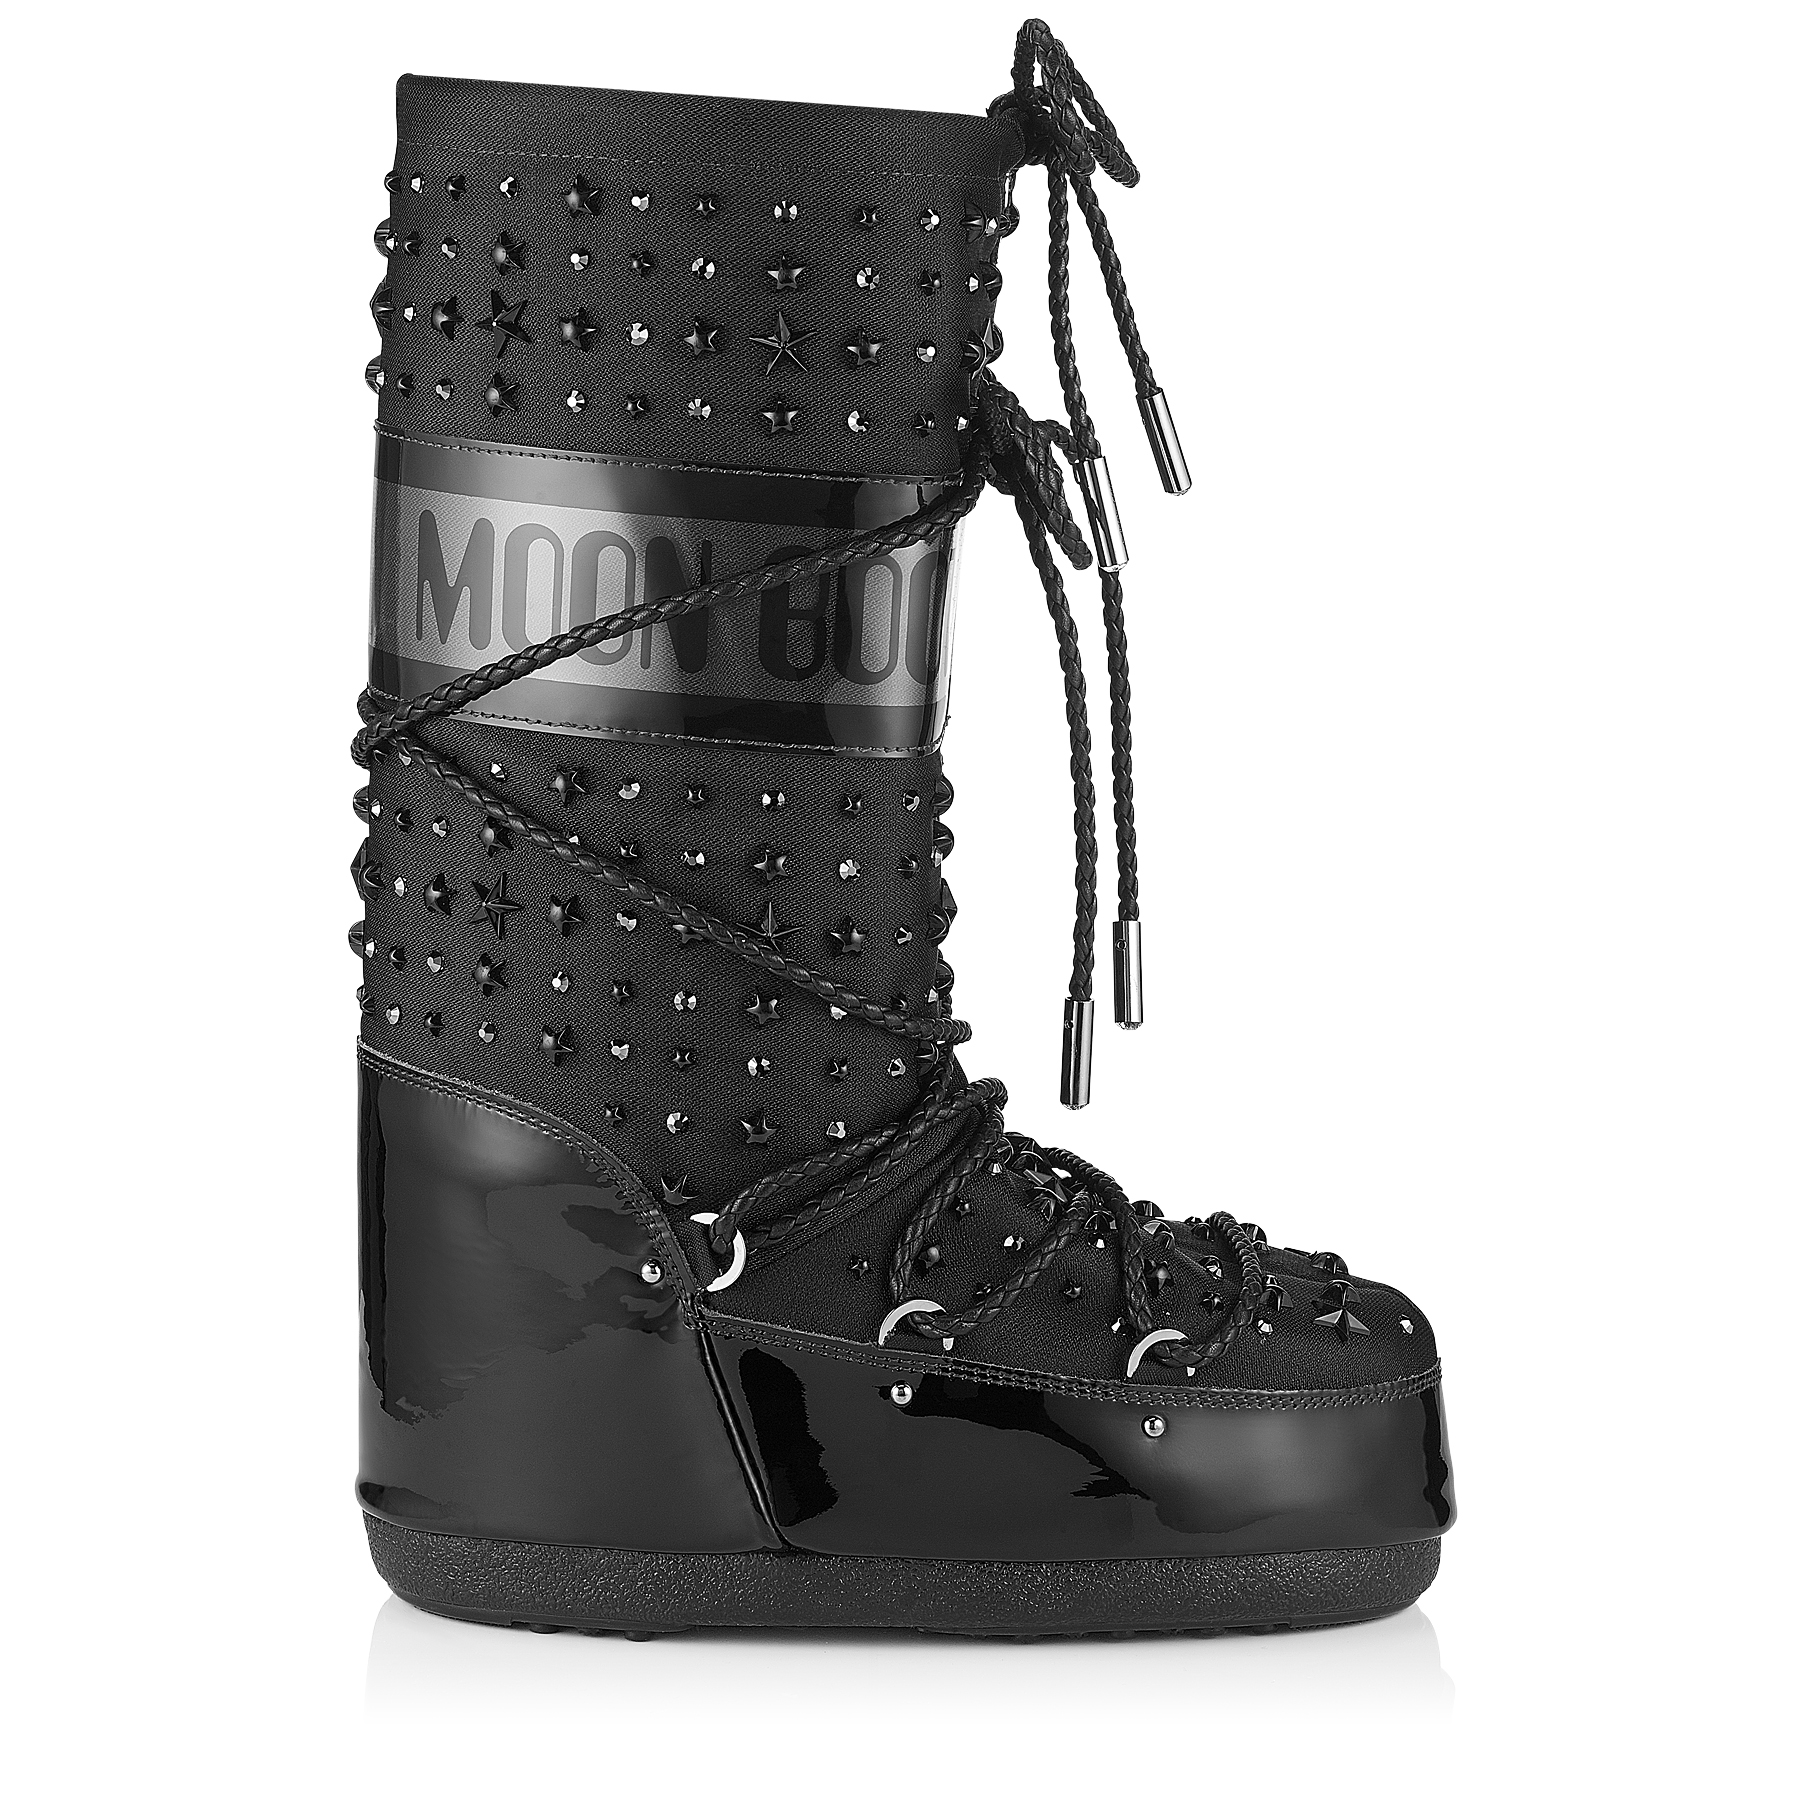 MB CLASSIC Black Patent and Fabric Moon Boot® with Crystals and Stars Embellishment